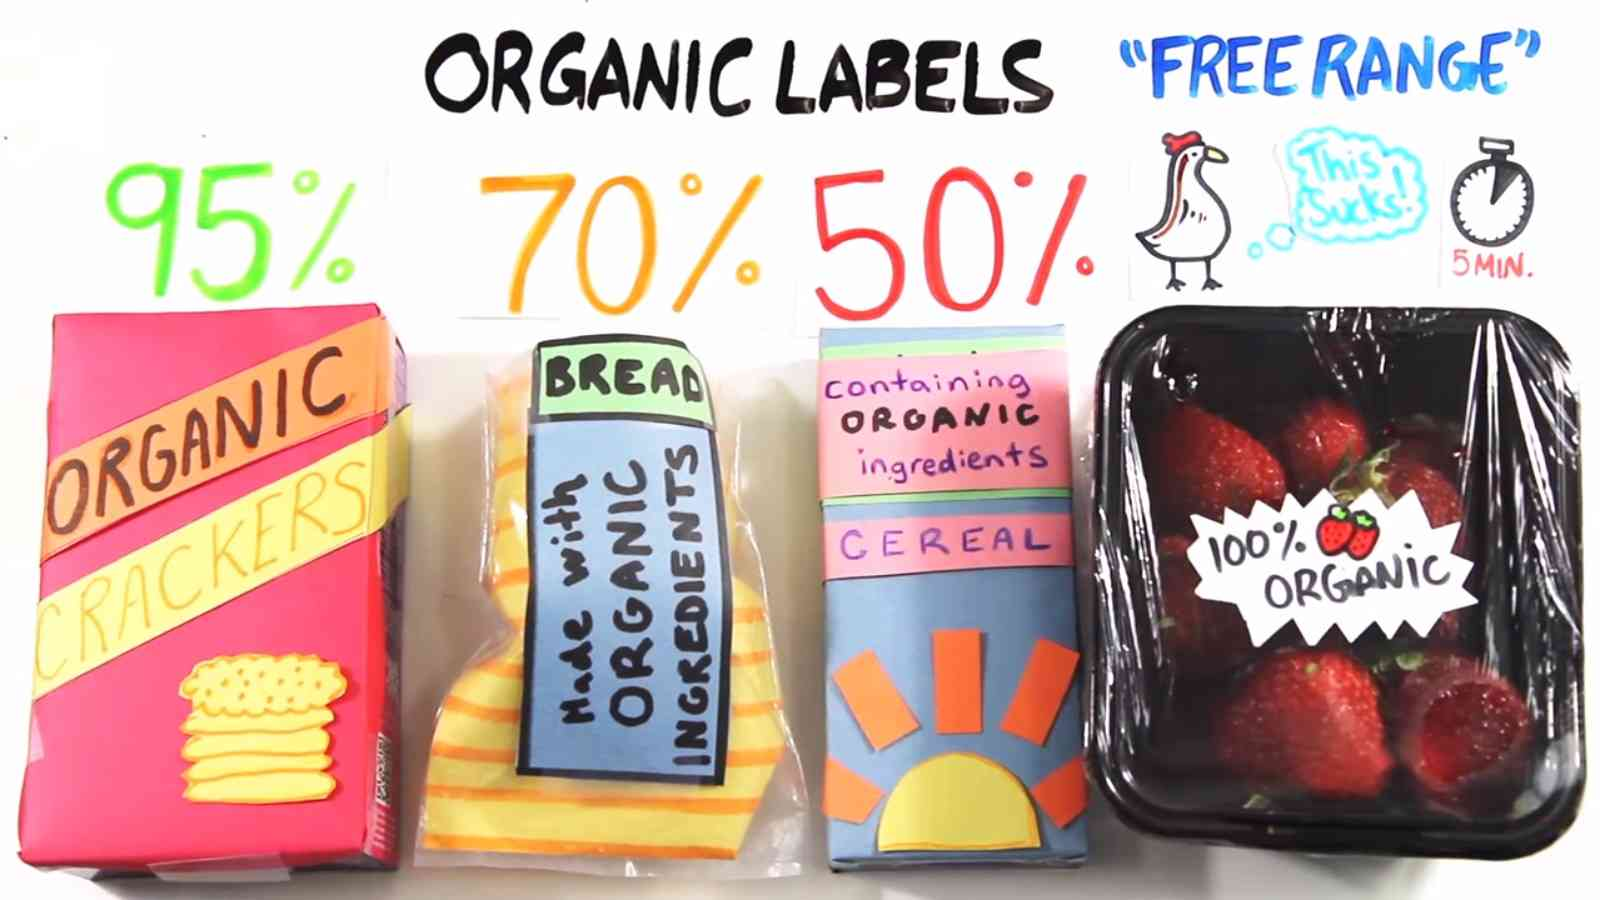 Organic Label Does not Always Mean Your Food Is Healthier